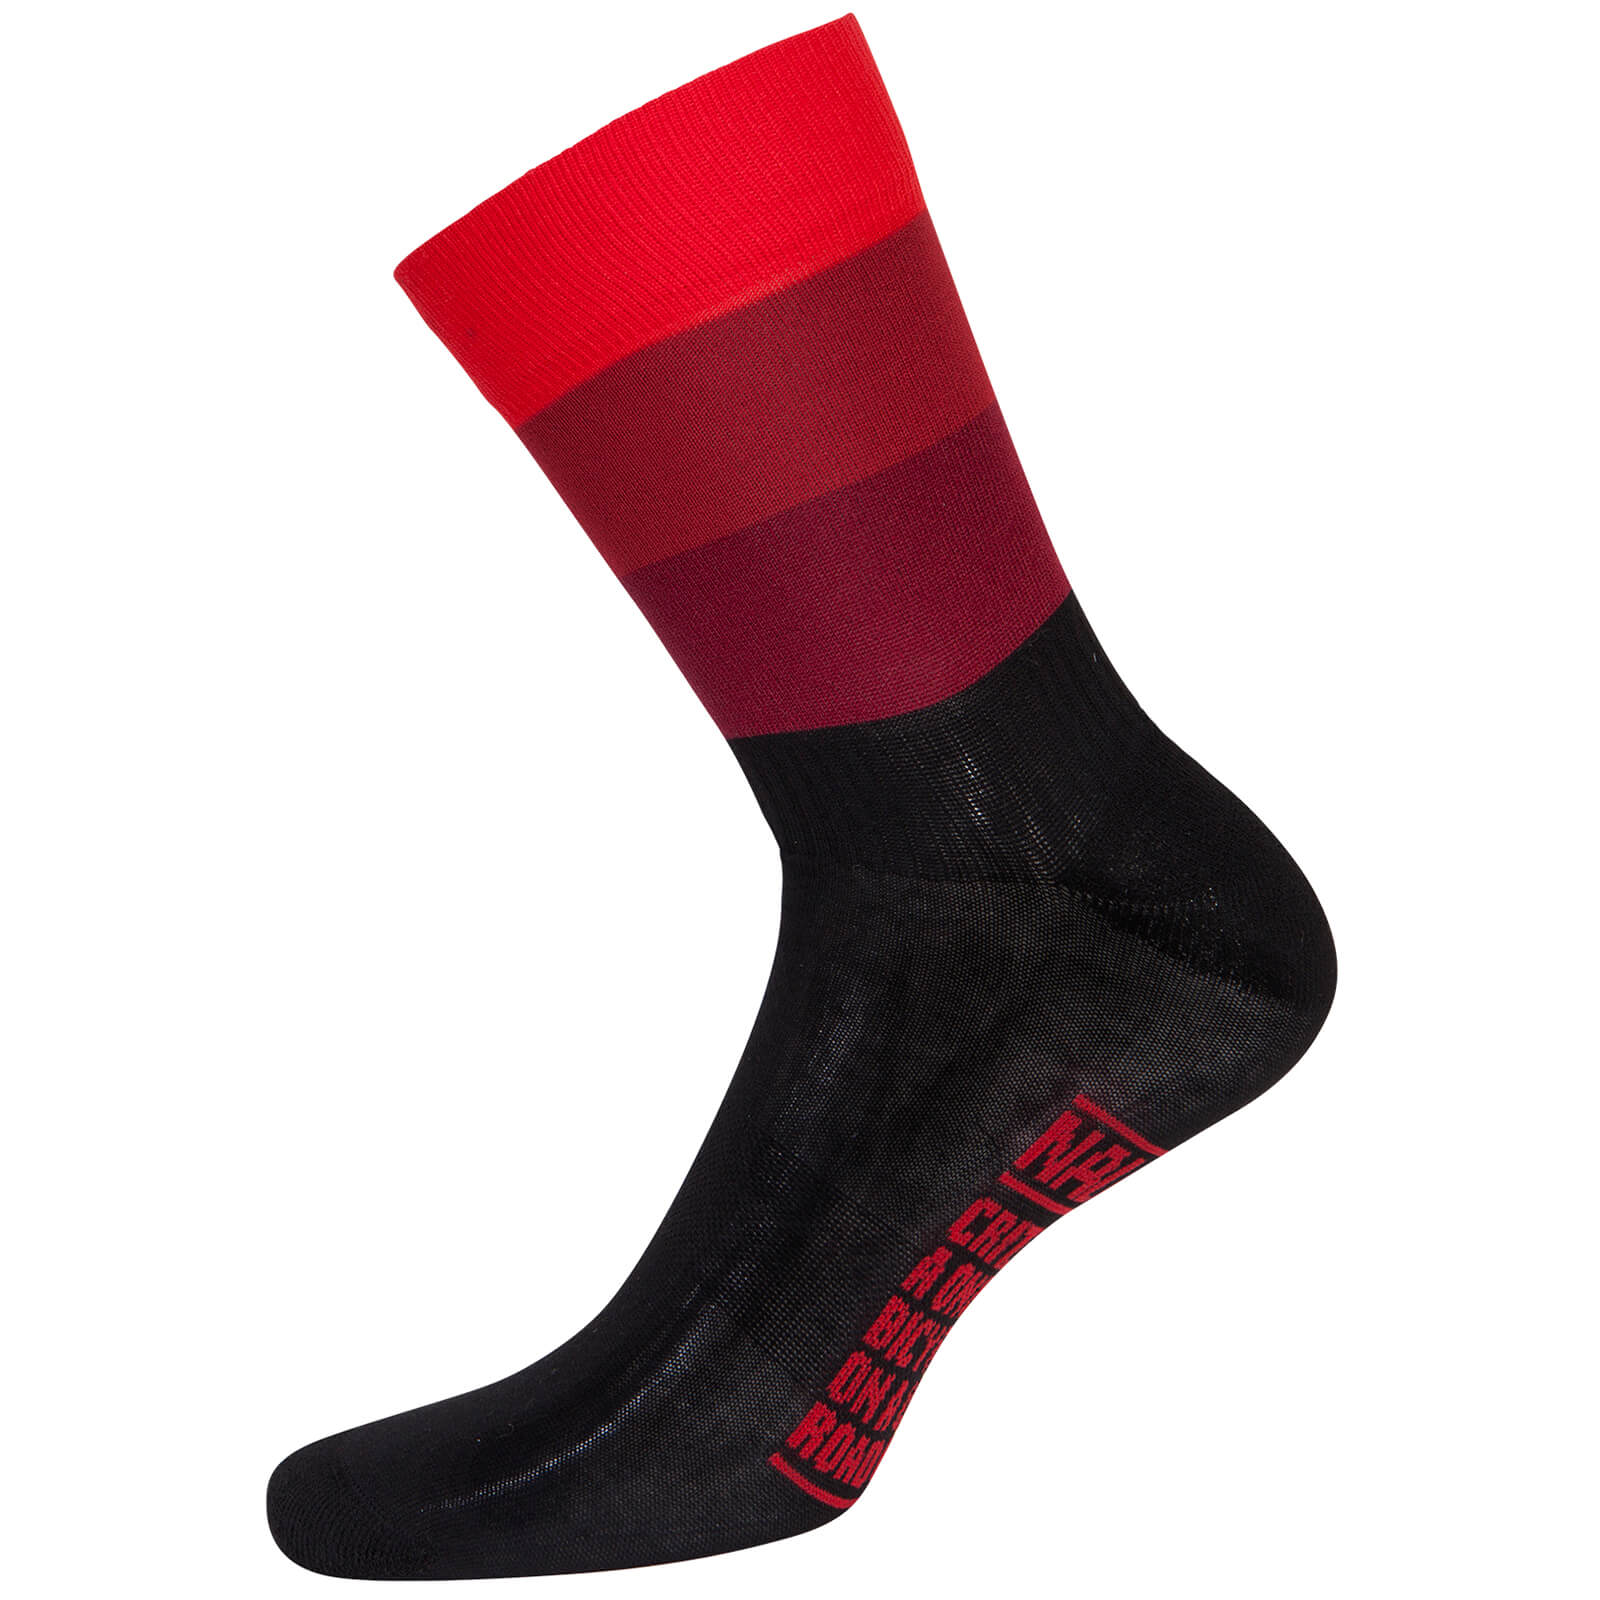 Nalini Blue Socks - Black/Red